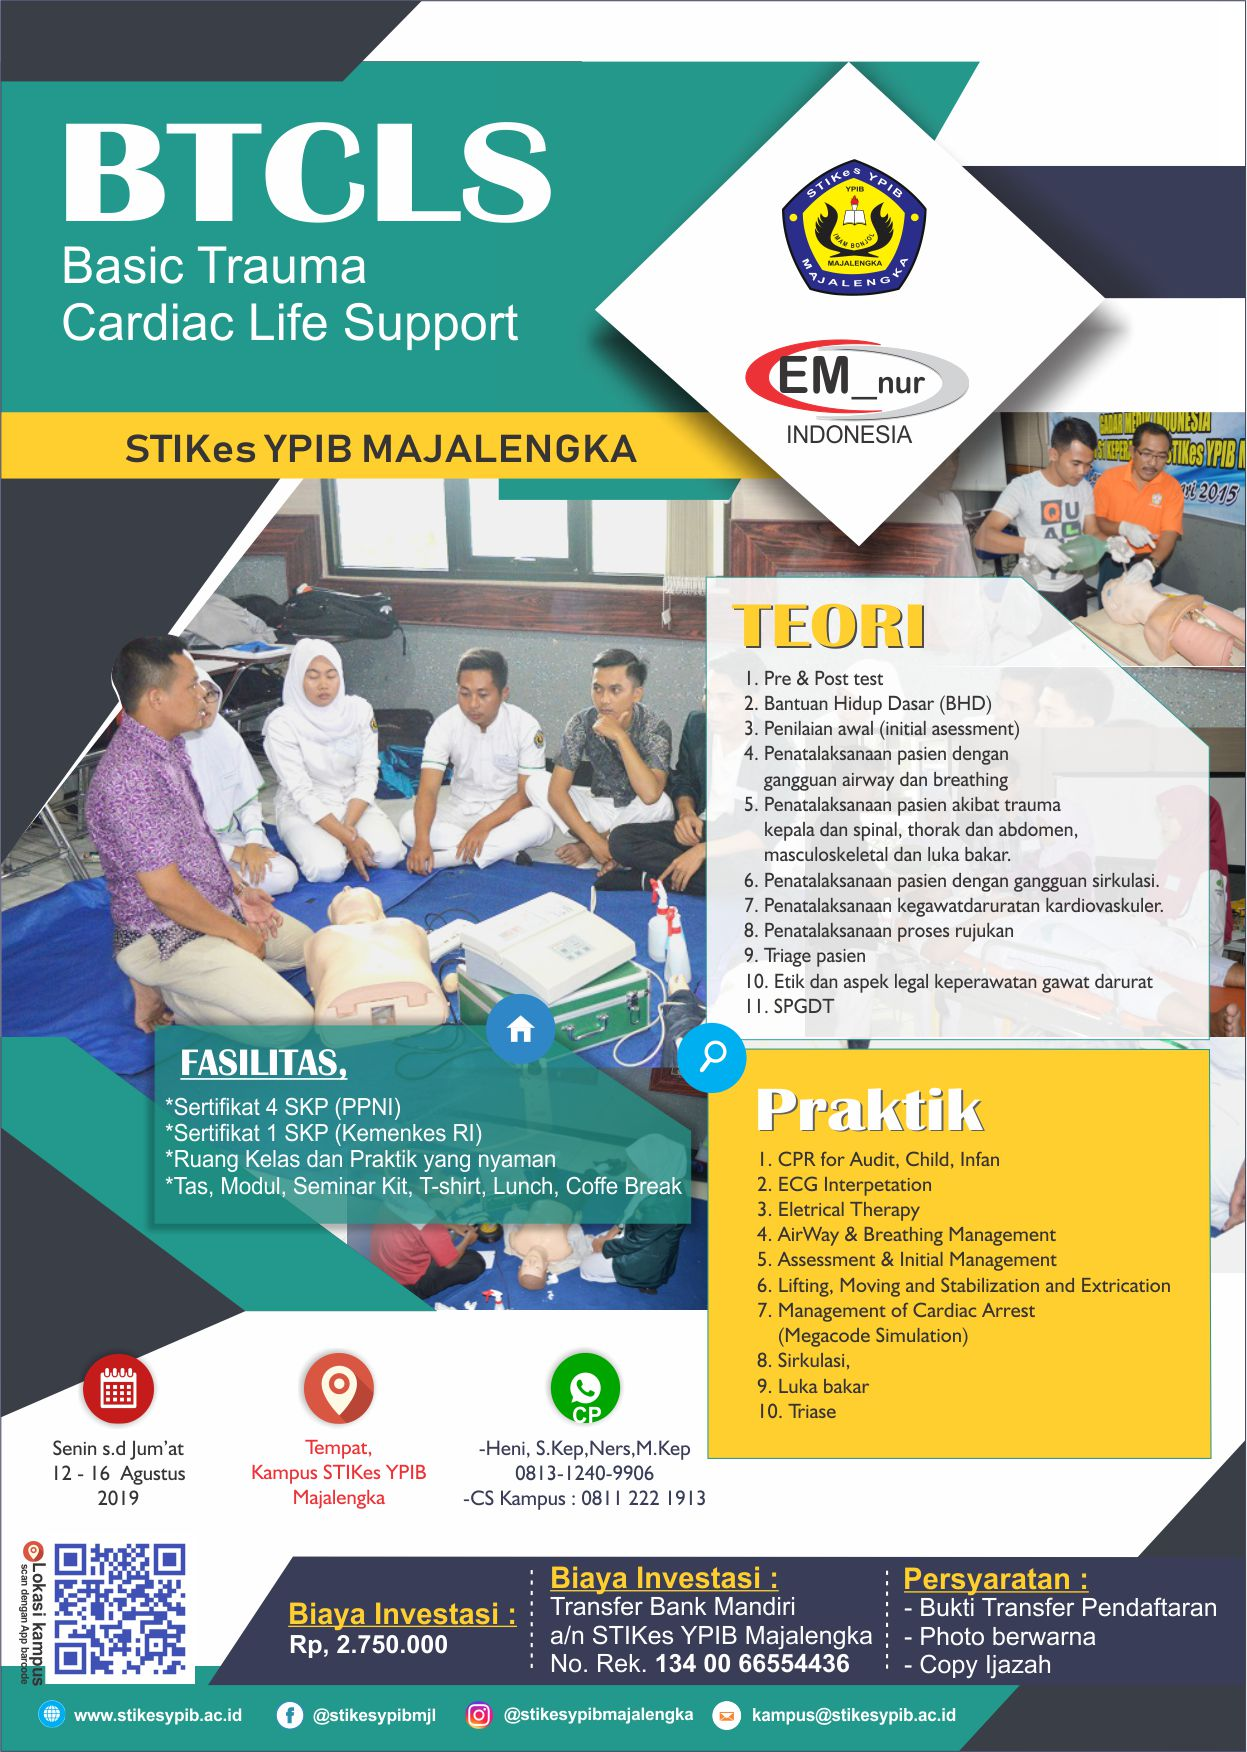 BTCLS Basic Trauma Cardiac Life Support